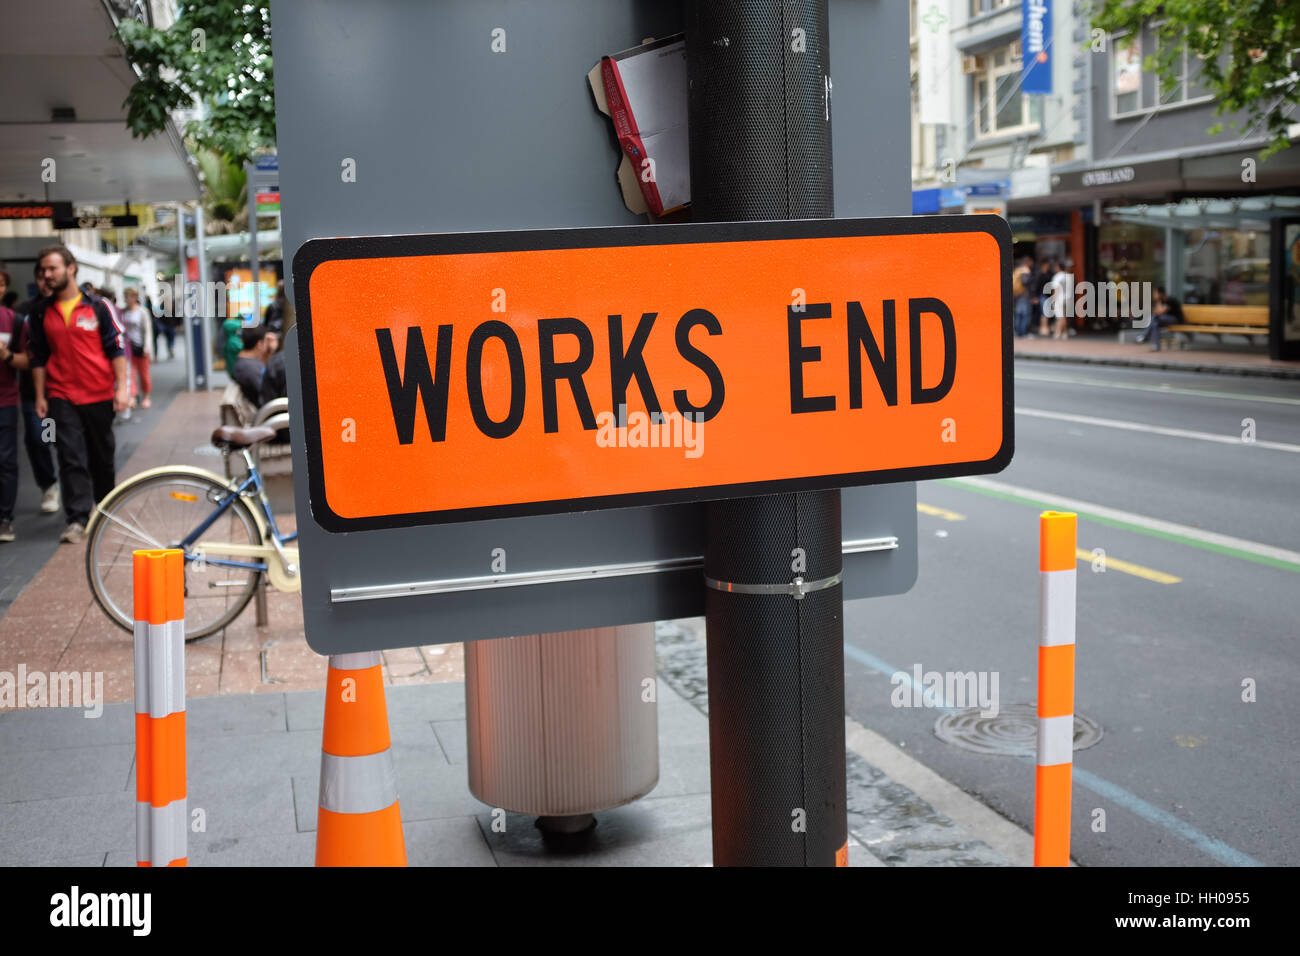 A 'works end' sign. - Stock Image